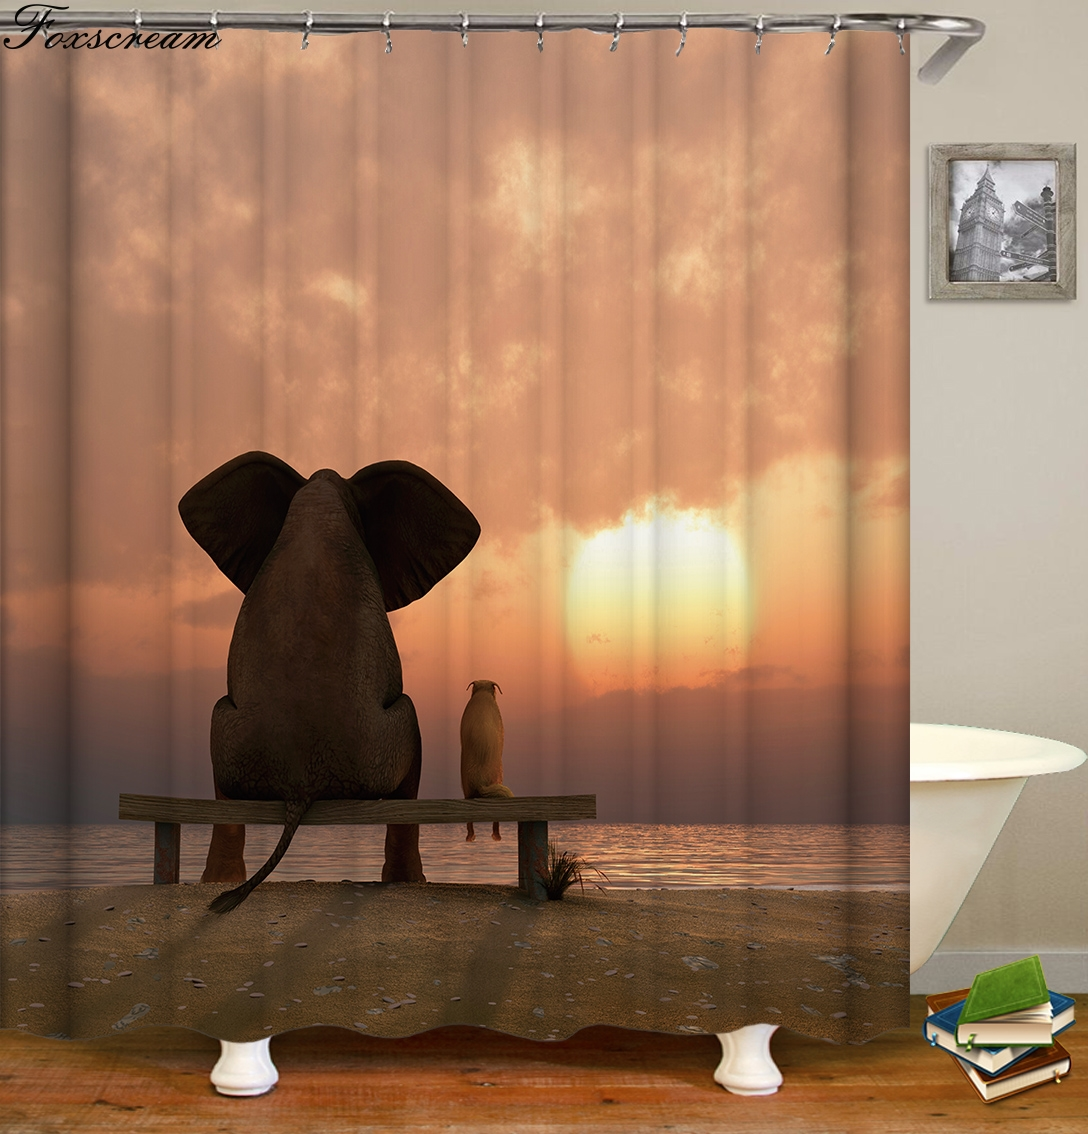 >New High Quality Elephant Printing Shower Curtain 3D Polyester Fabric <font><b>Waterproof</b></font> <font><b>Mildewproof</b></font> Bathroom Curtain or mat